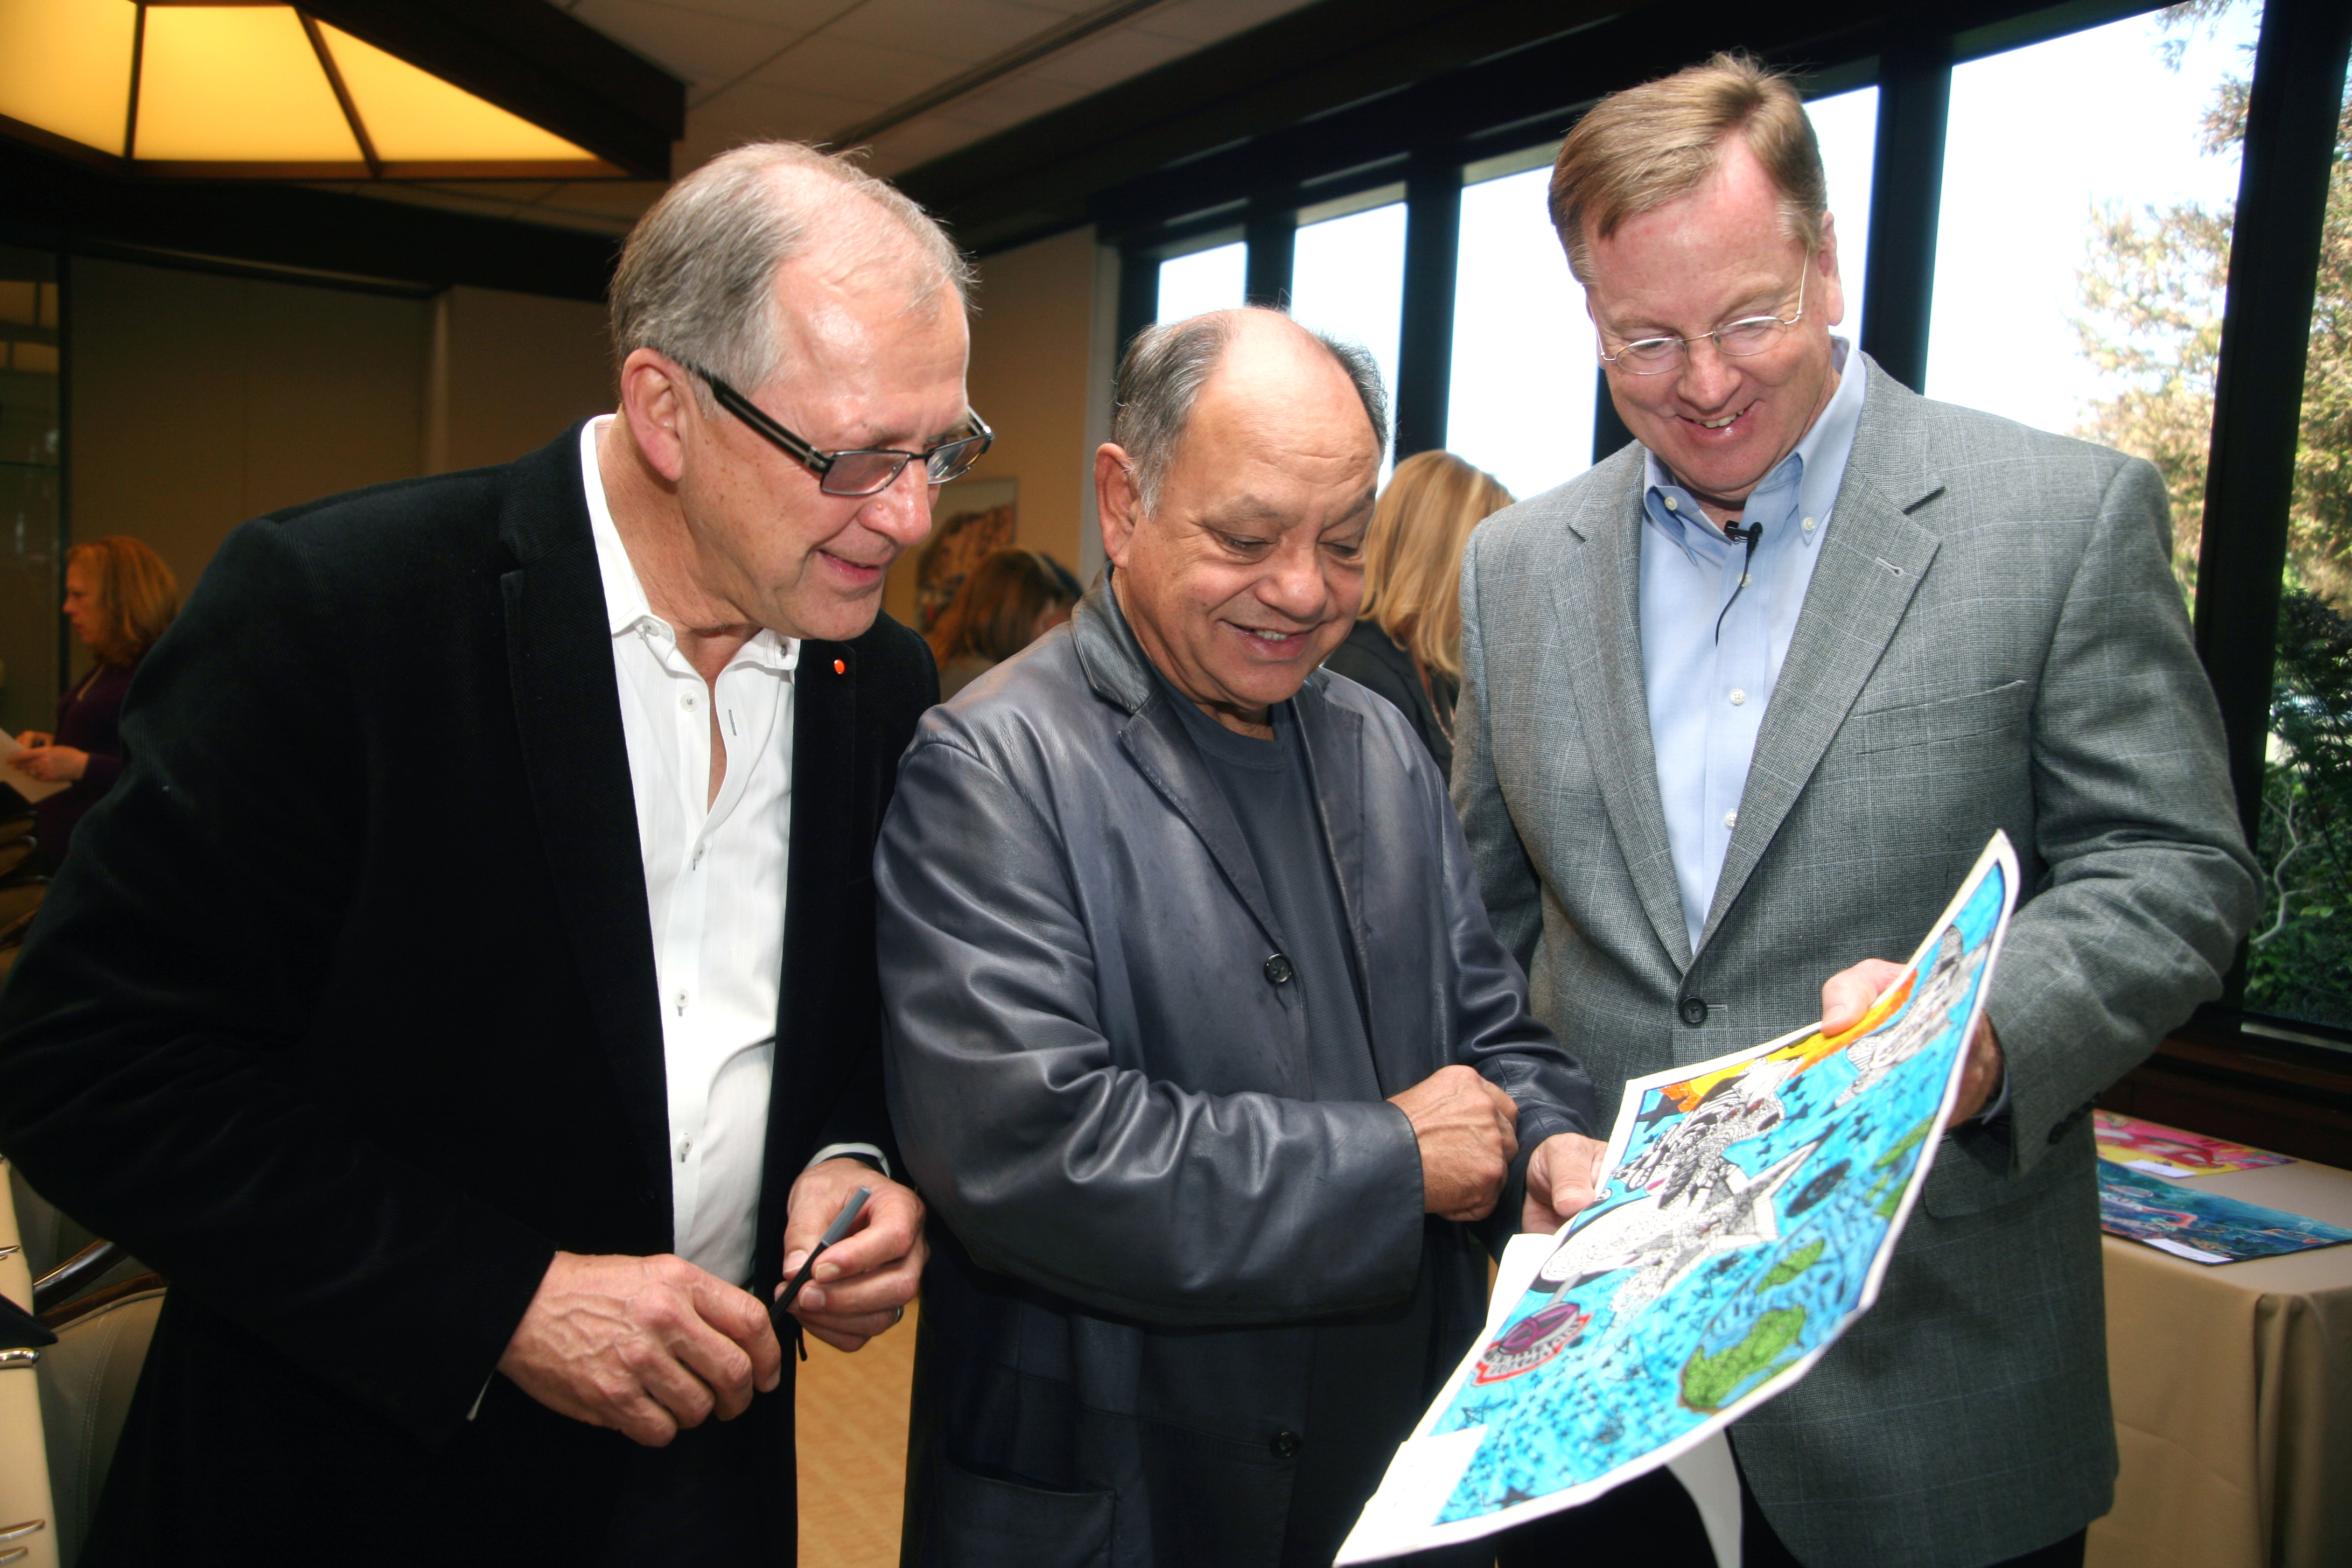 Stewart Reed, Cheech Marin and Mike Groff served as FY15 U.S. Judges for Toyota Dream Car